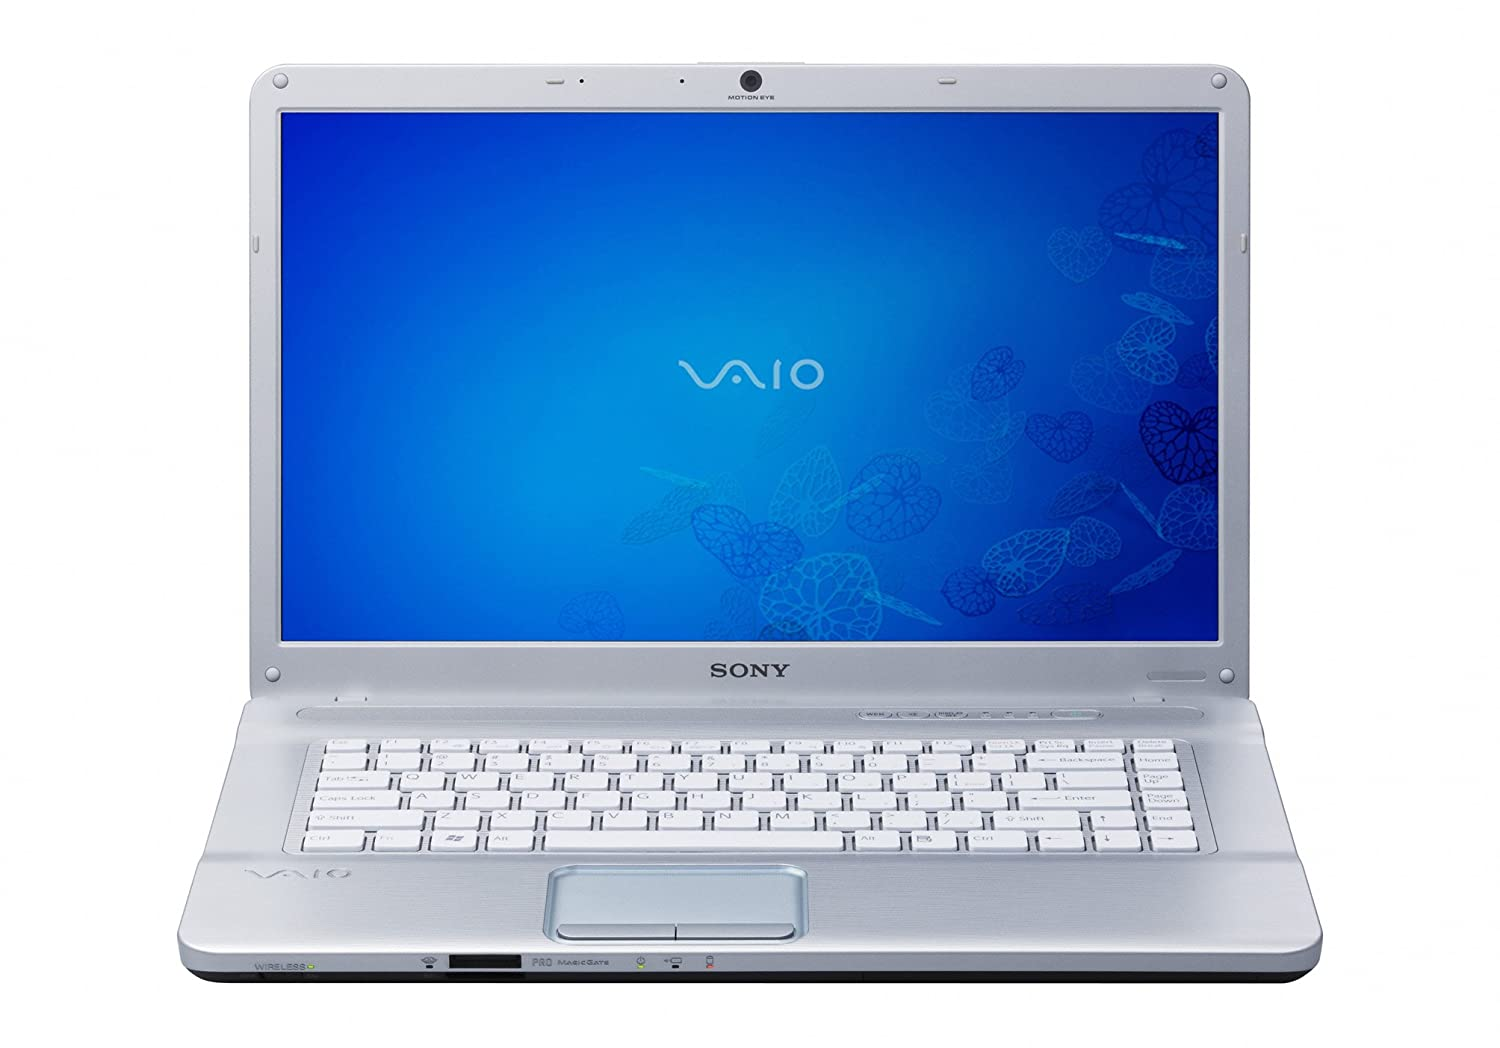 SONY VAIO HKSERV DRIVER FOR WINDOWS DOWNLOAD